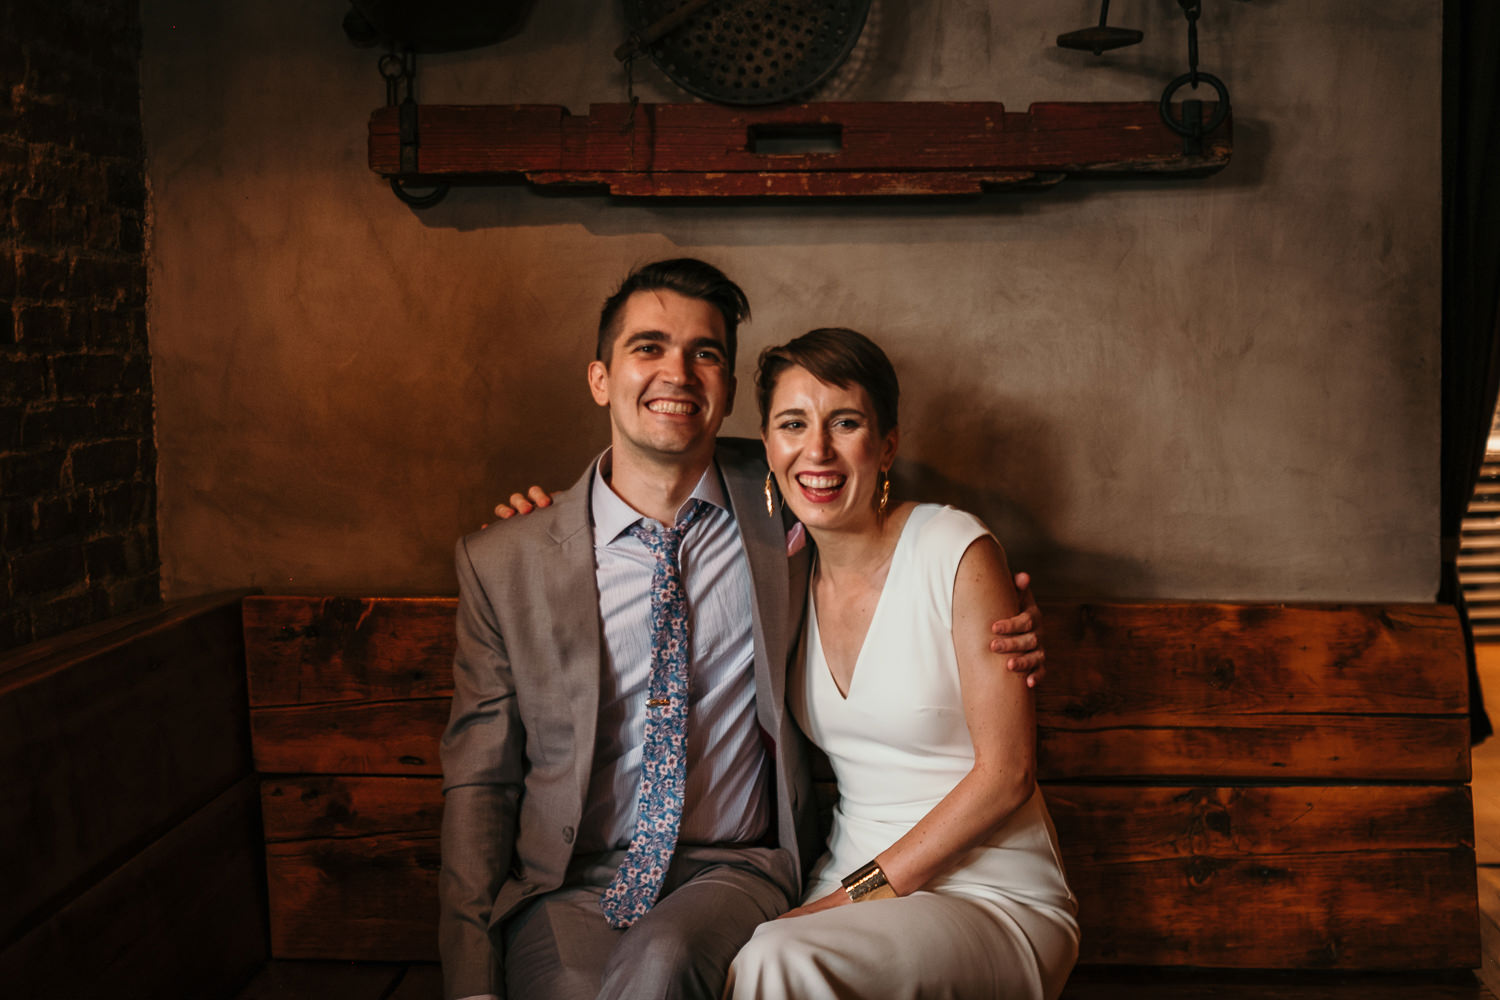 newlyweds sitting on wooden bench inside restaurant laughing at camera concrete wall